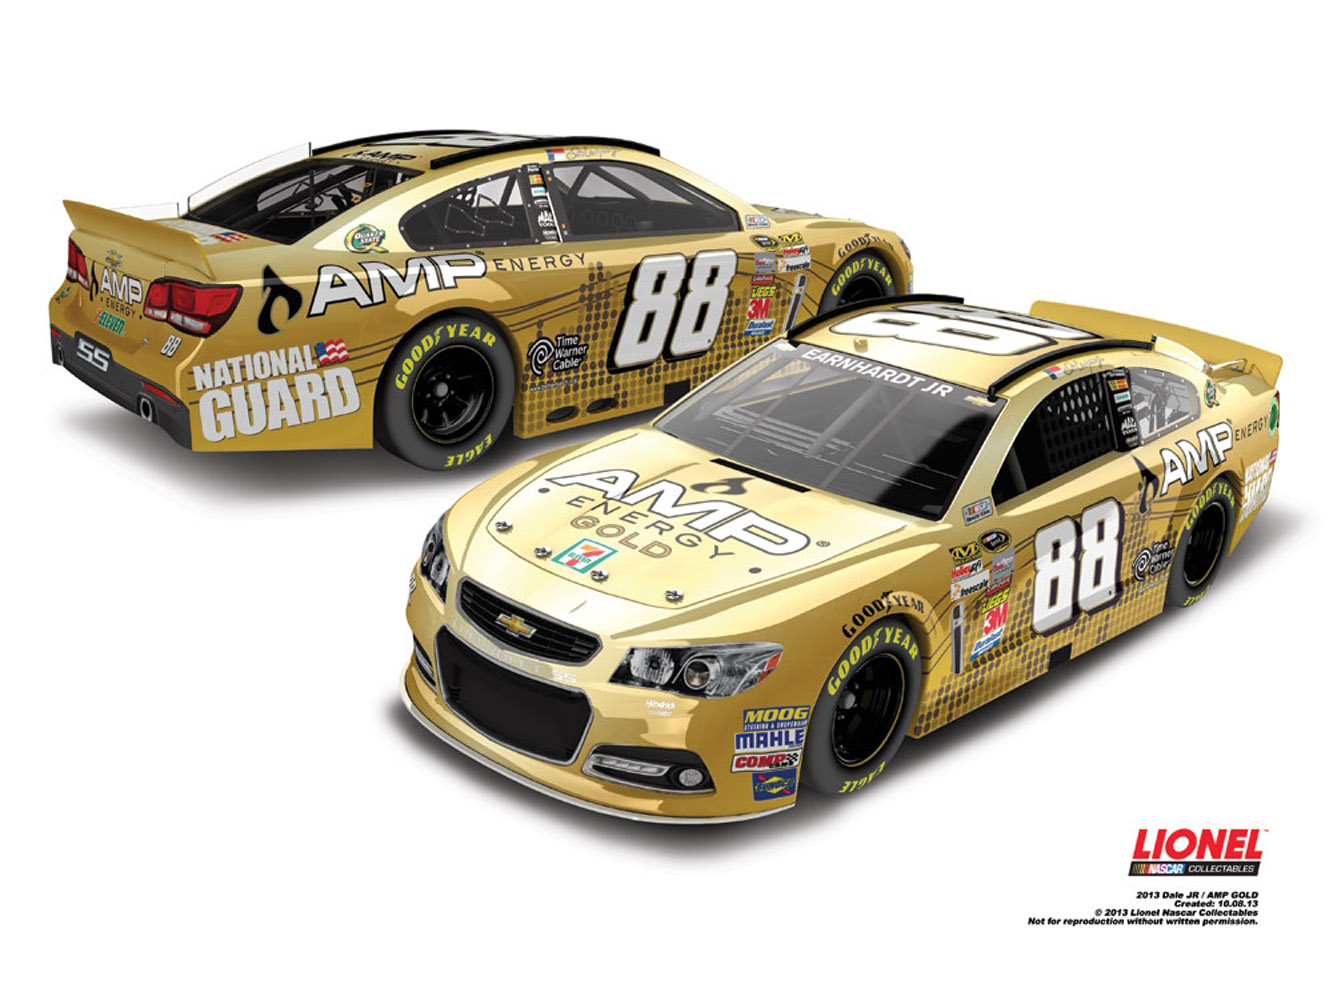 2013 Dale Earnhardt Jr #88 AMP ENERGY GOLD 1/64 Diecast Car.